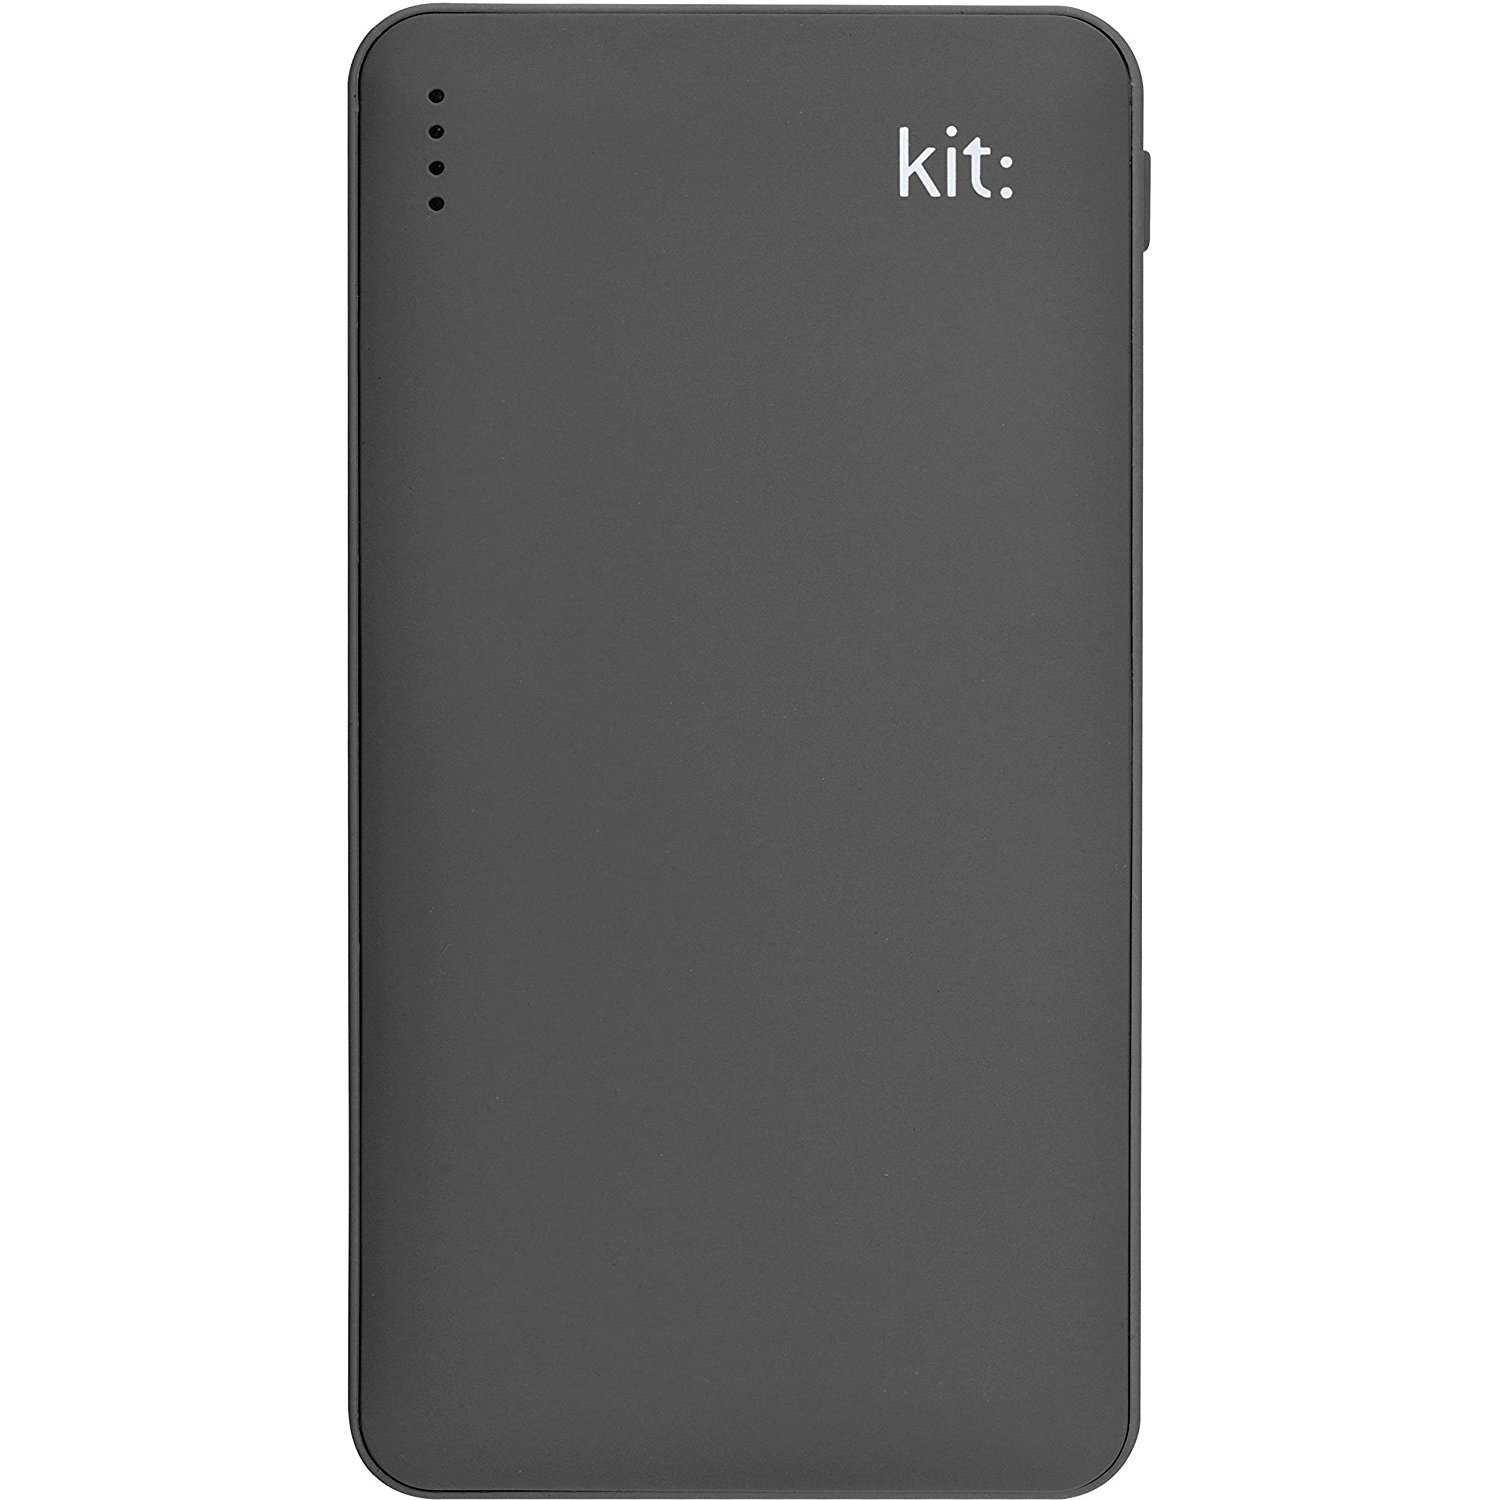 Kit Power Bank Fresh 12000 mAh szürke